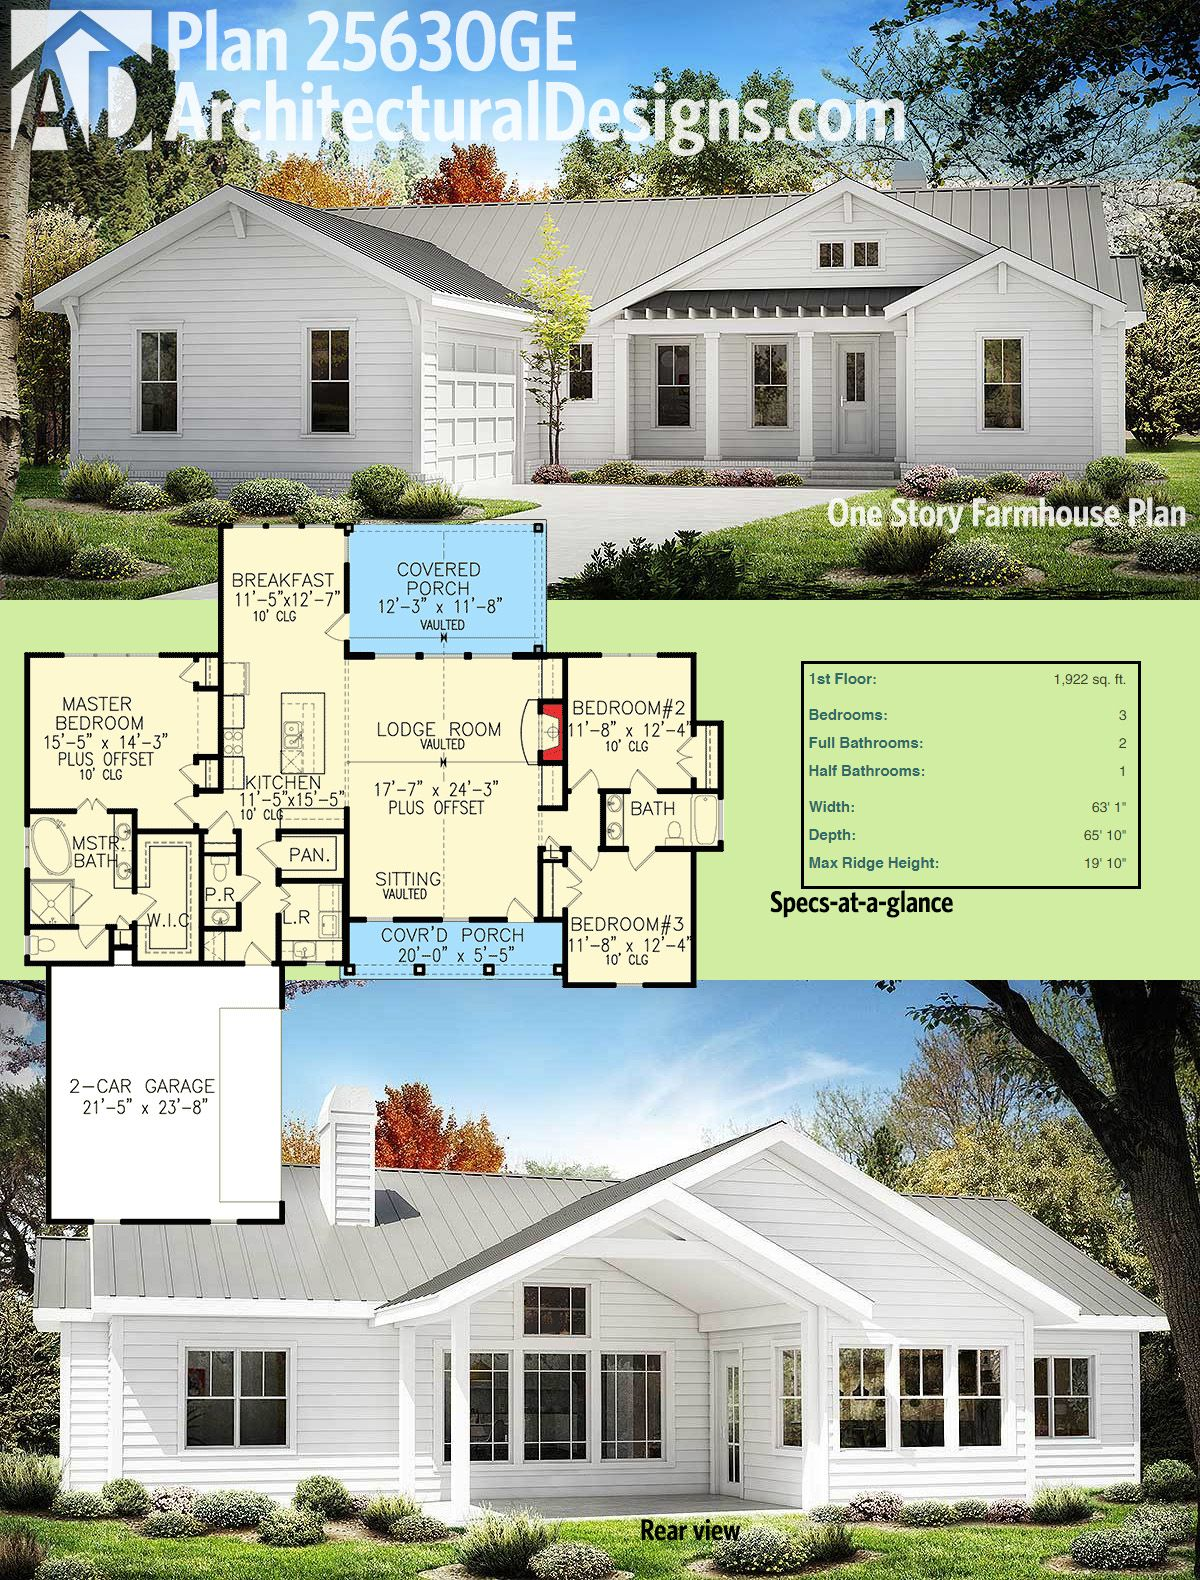 Plan 25630ge one story farmhouse plan farmhouse plans for Home plans farmhouse